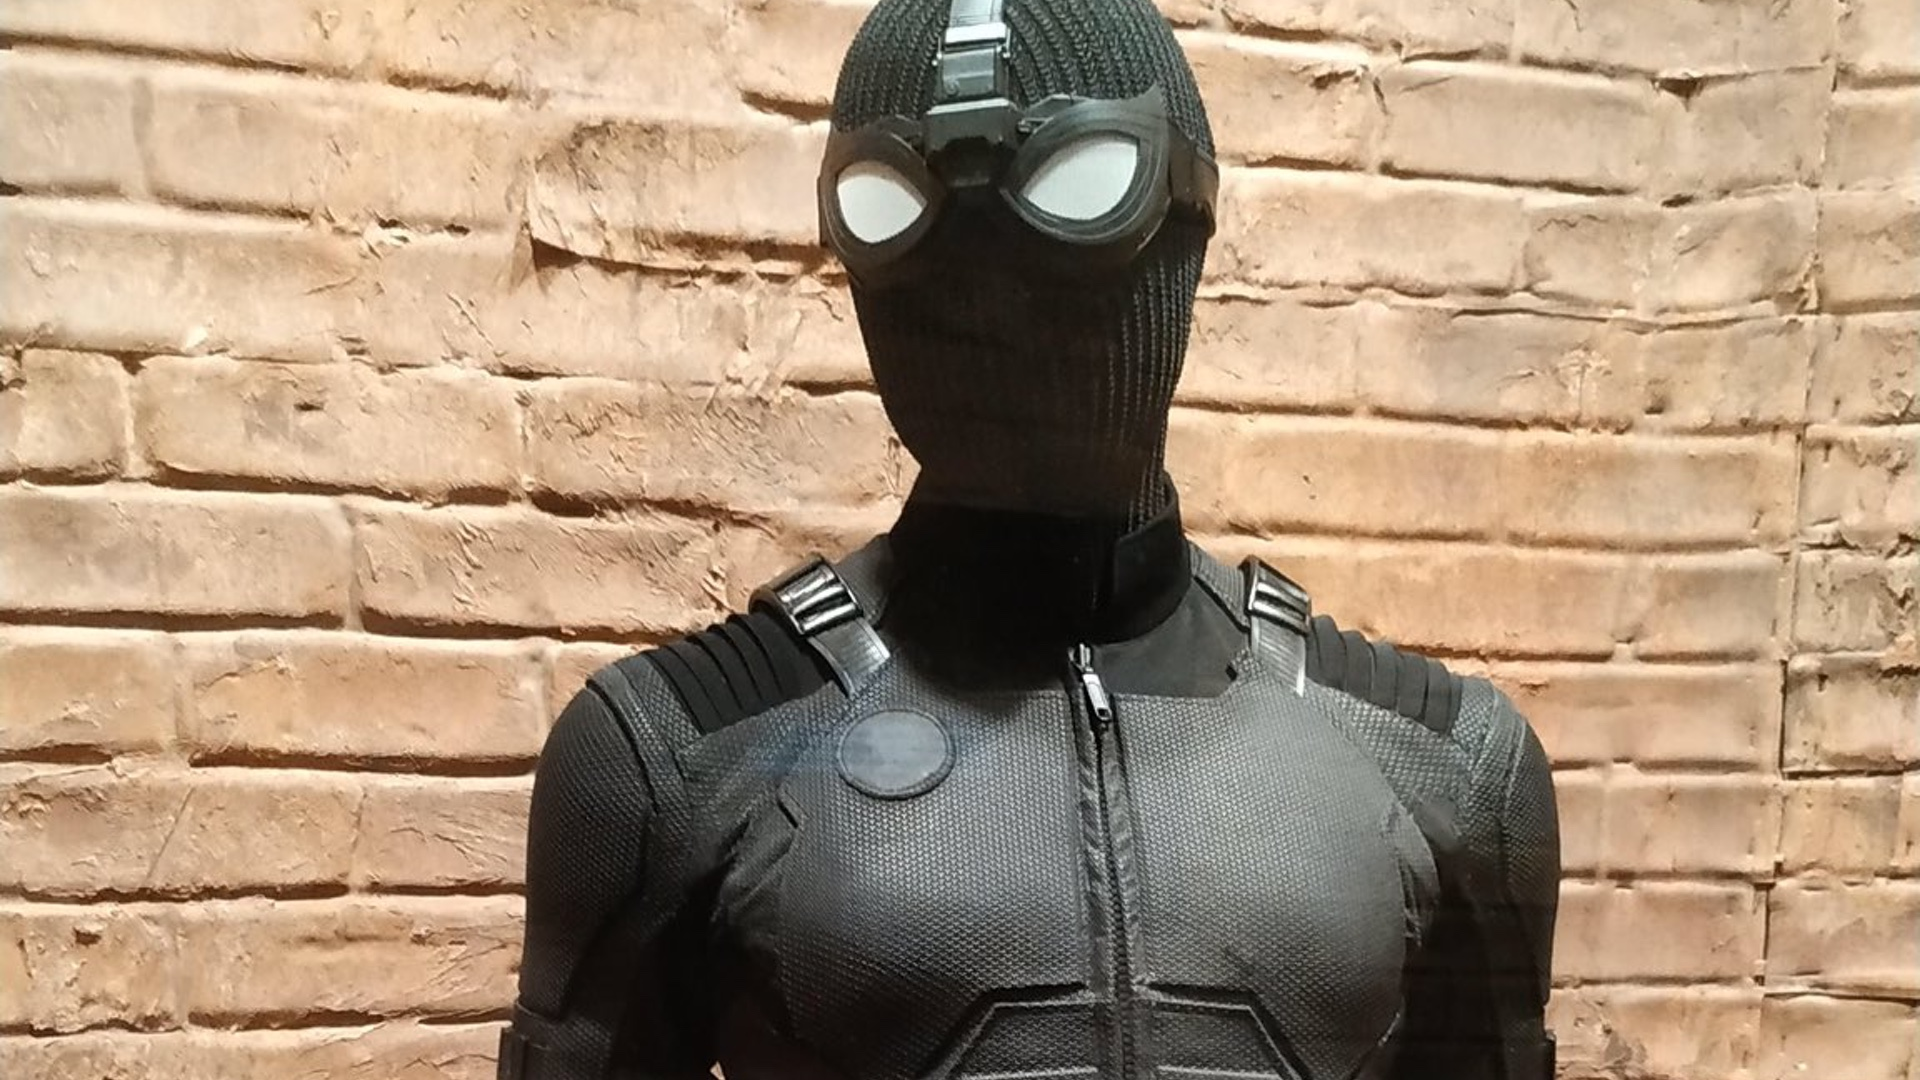 A Couple P Os Have Surfaced Of The New Costumes That Well See In Spider Man Far From Home They Include The Black Spider Man Costume That Weve Seen In